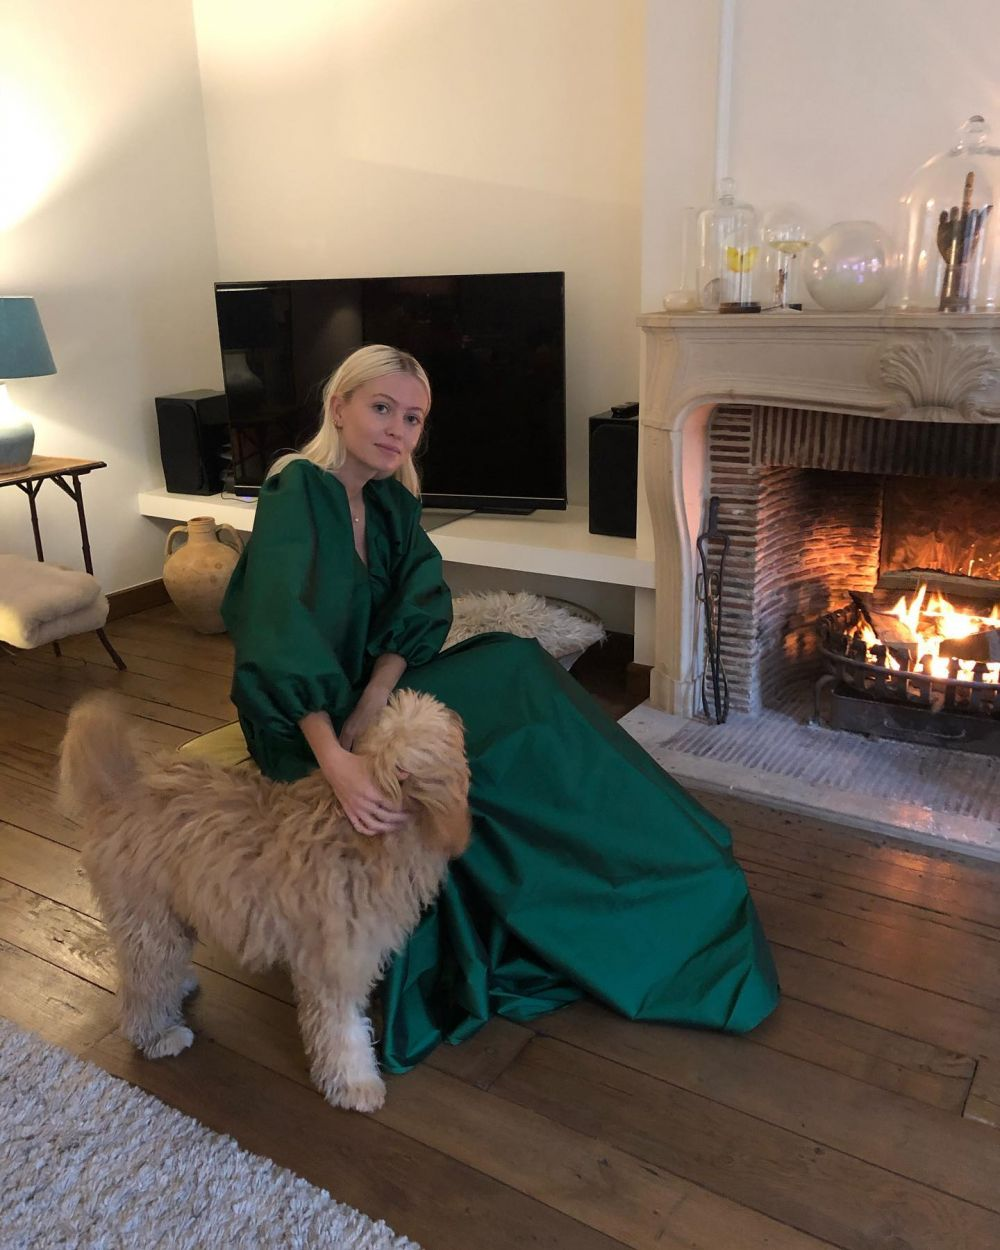 Favorite dog, favorite dress. Happy first of January!🌲🐕🍾  WEARING THE EMERALD GREEN GEORGE DRESS. ~ Exclusively available @matchesfashion. #PS21